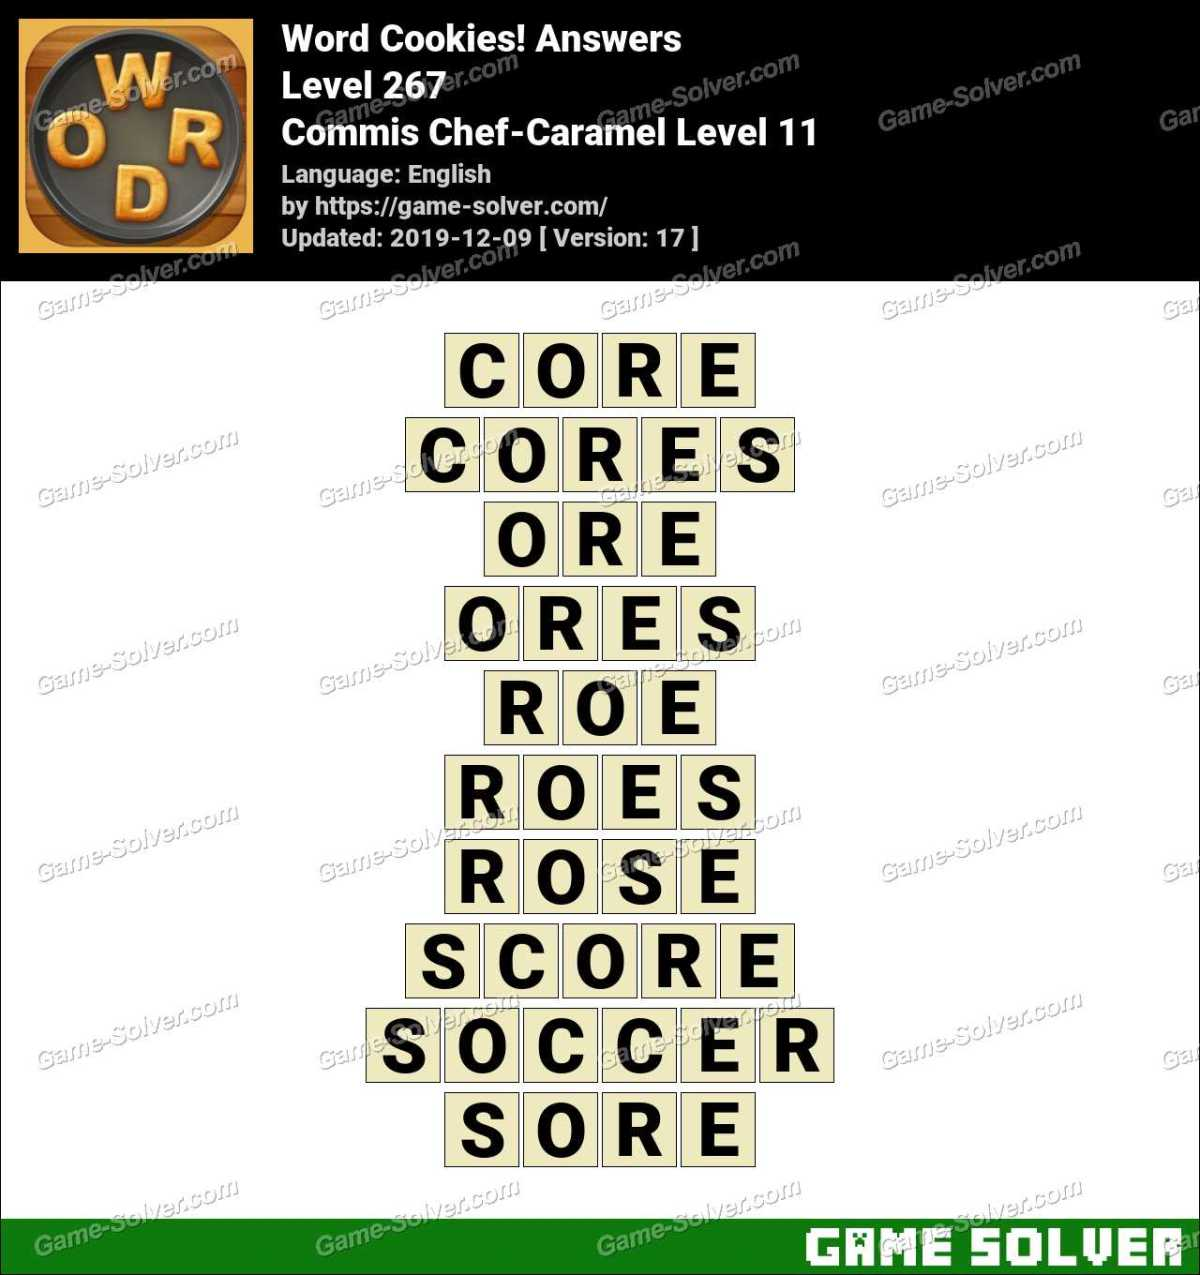 Word Cookies Commis Chef-Caramel Level 11 Answers